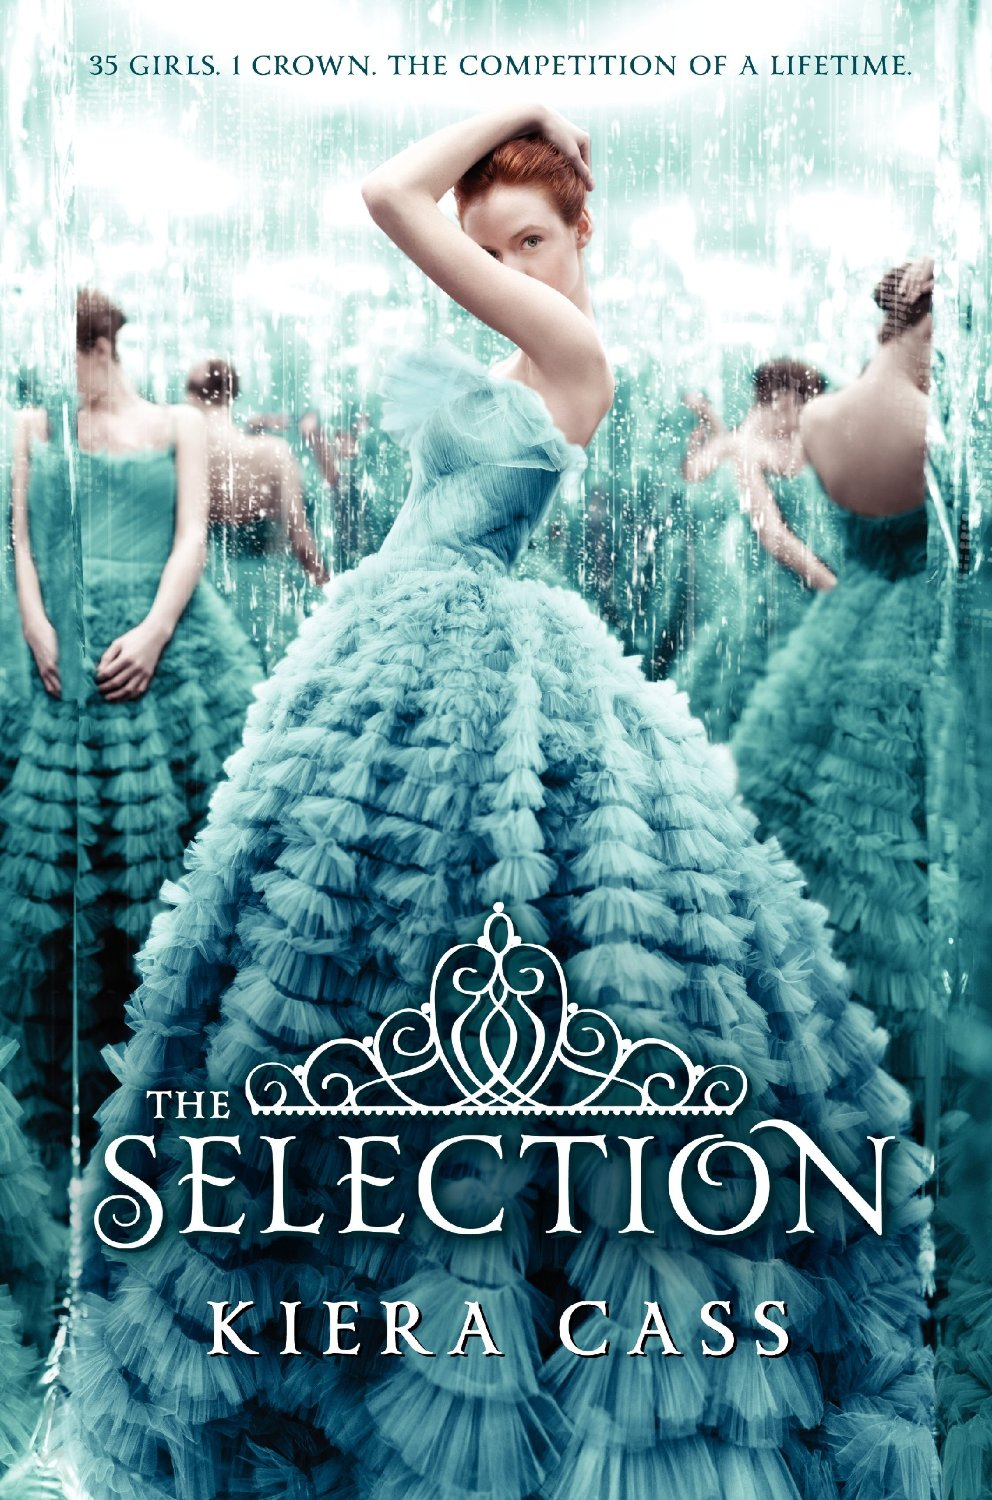 http://vignette2.wikia.nocookie.net/theselection/images/4/4a/The_Selection_Cover.jpg/revision/latest?cb=20130911044436